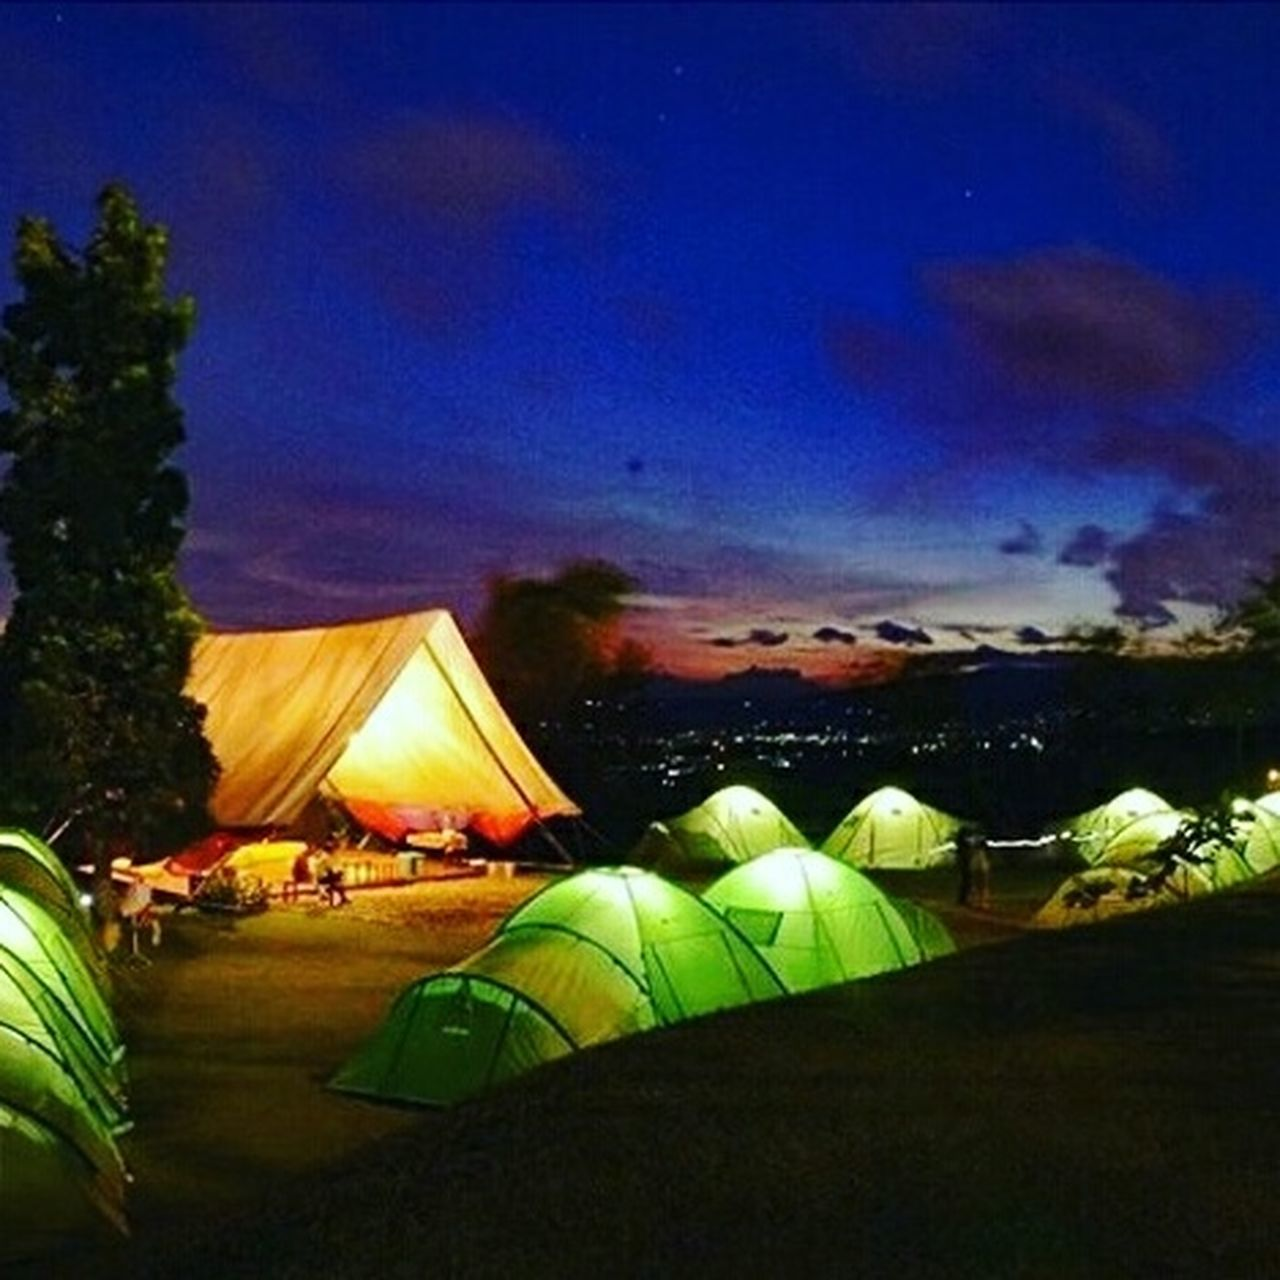 Sky Night Outdoors Nature Nature Photography Beauty In Nature Tent Arts Culture And Entertainment No People Star - Space Illuminated Milky Way Architecture Sunset